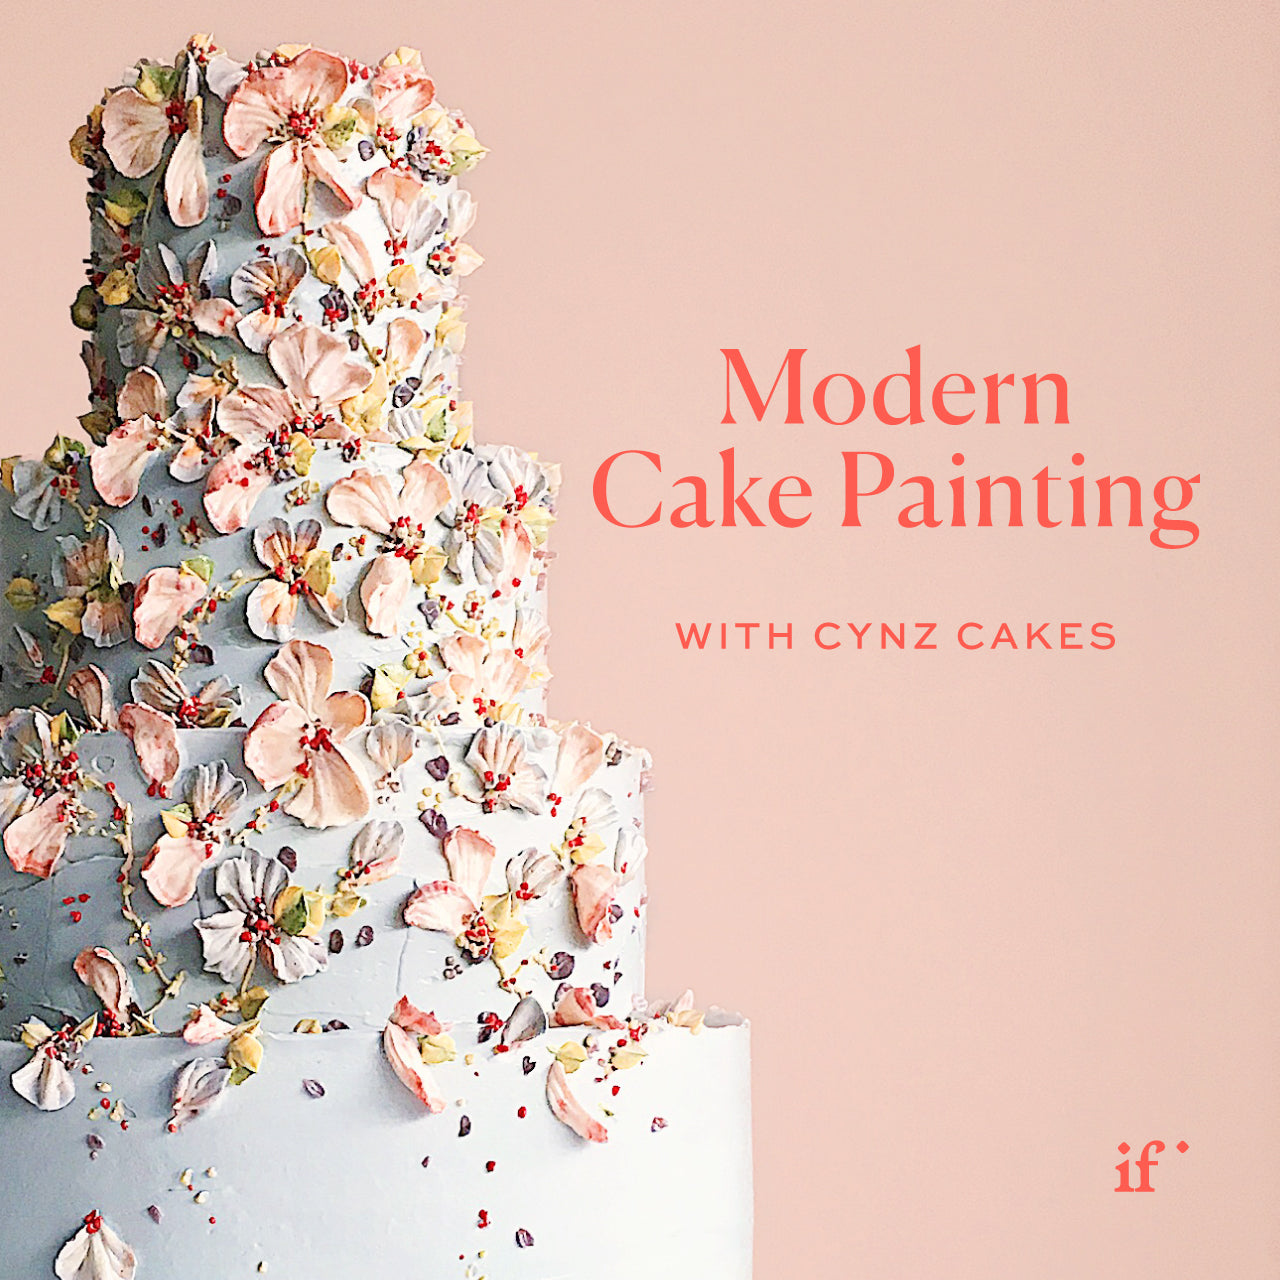 Sale: Modern Cake Painting with Cynz Cakes